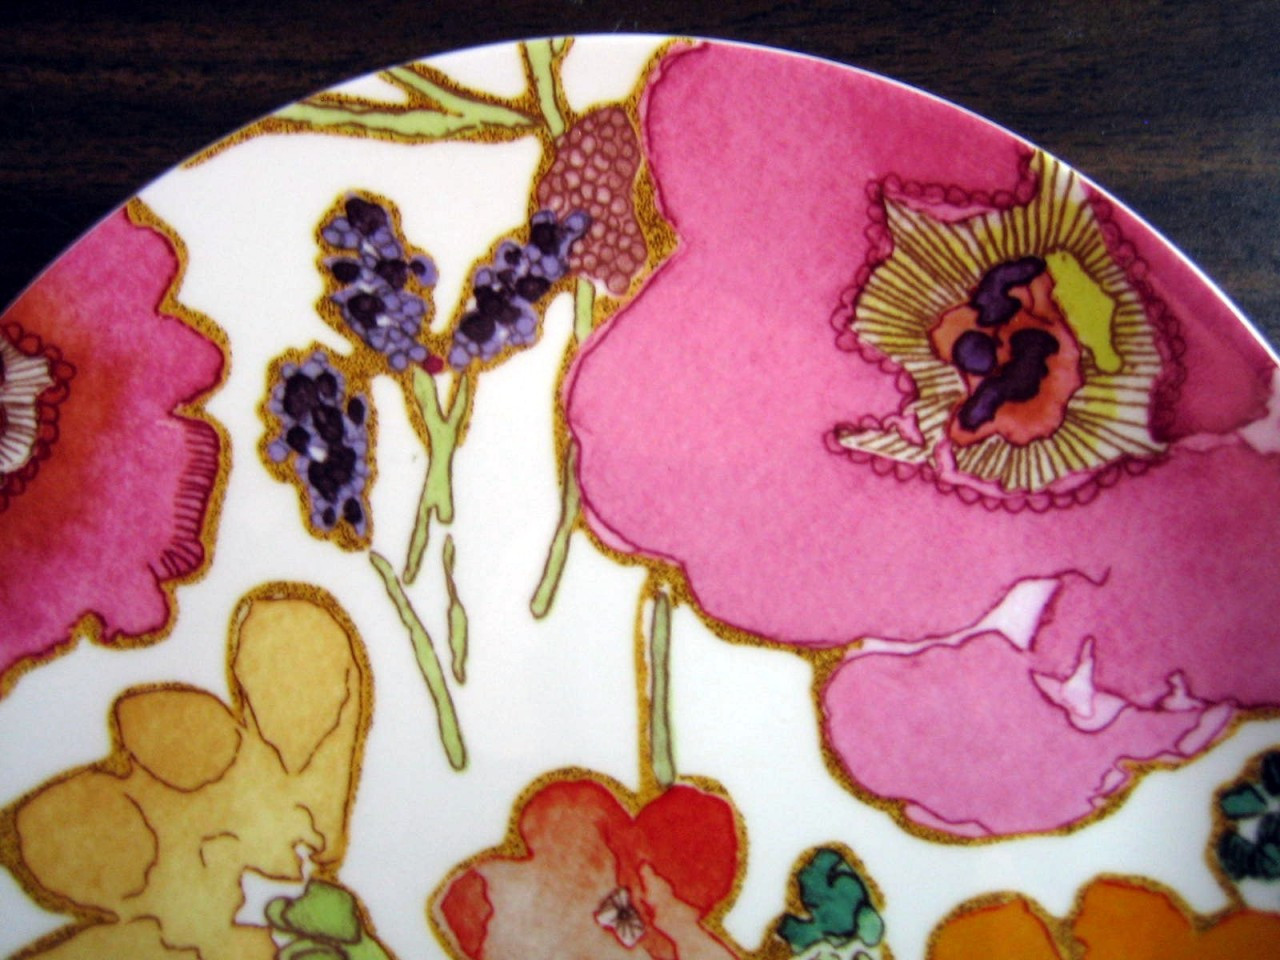 Decorative Plate - Psychedelic Poppy Pink Purple Orange Medium SIze Edge www.DecorativeDishes.net